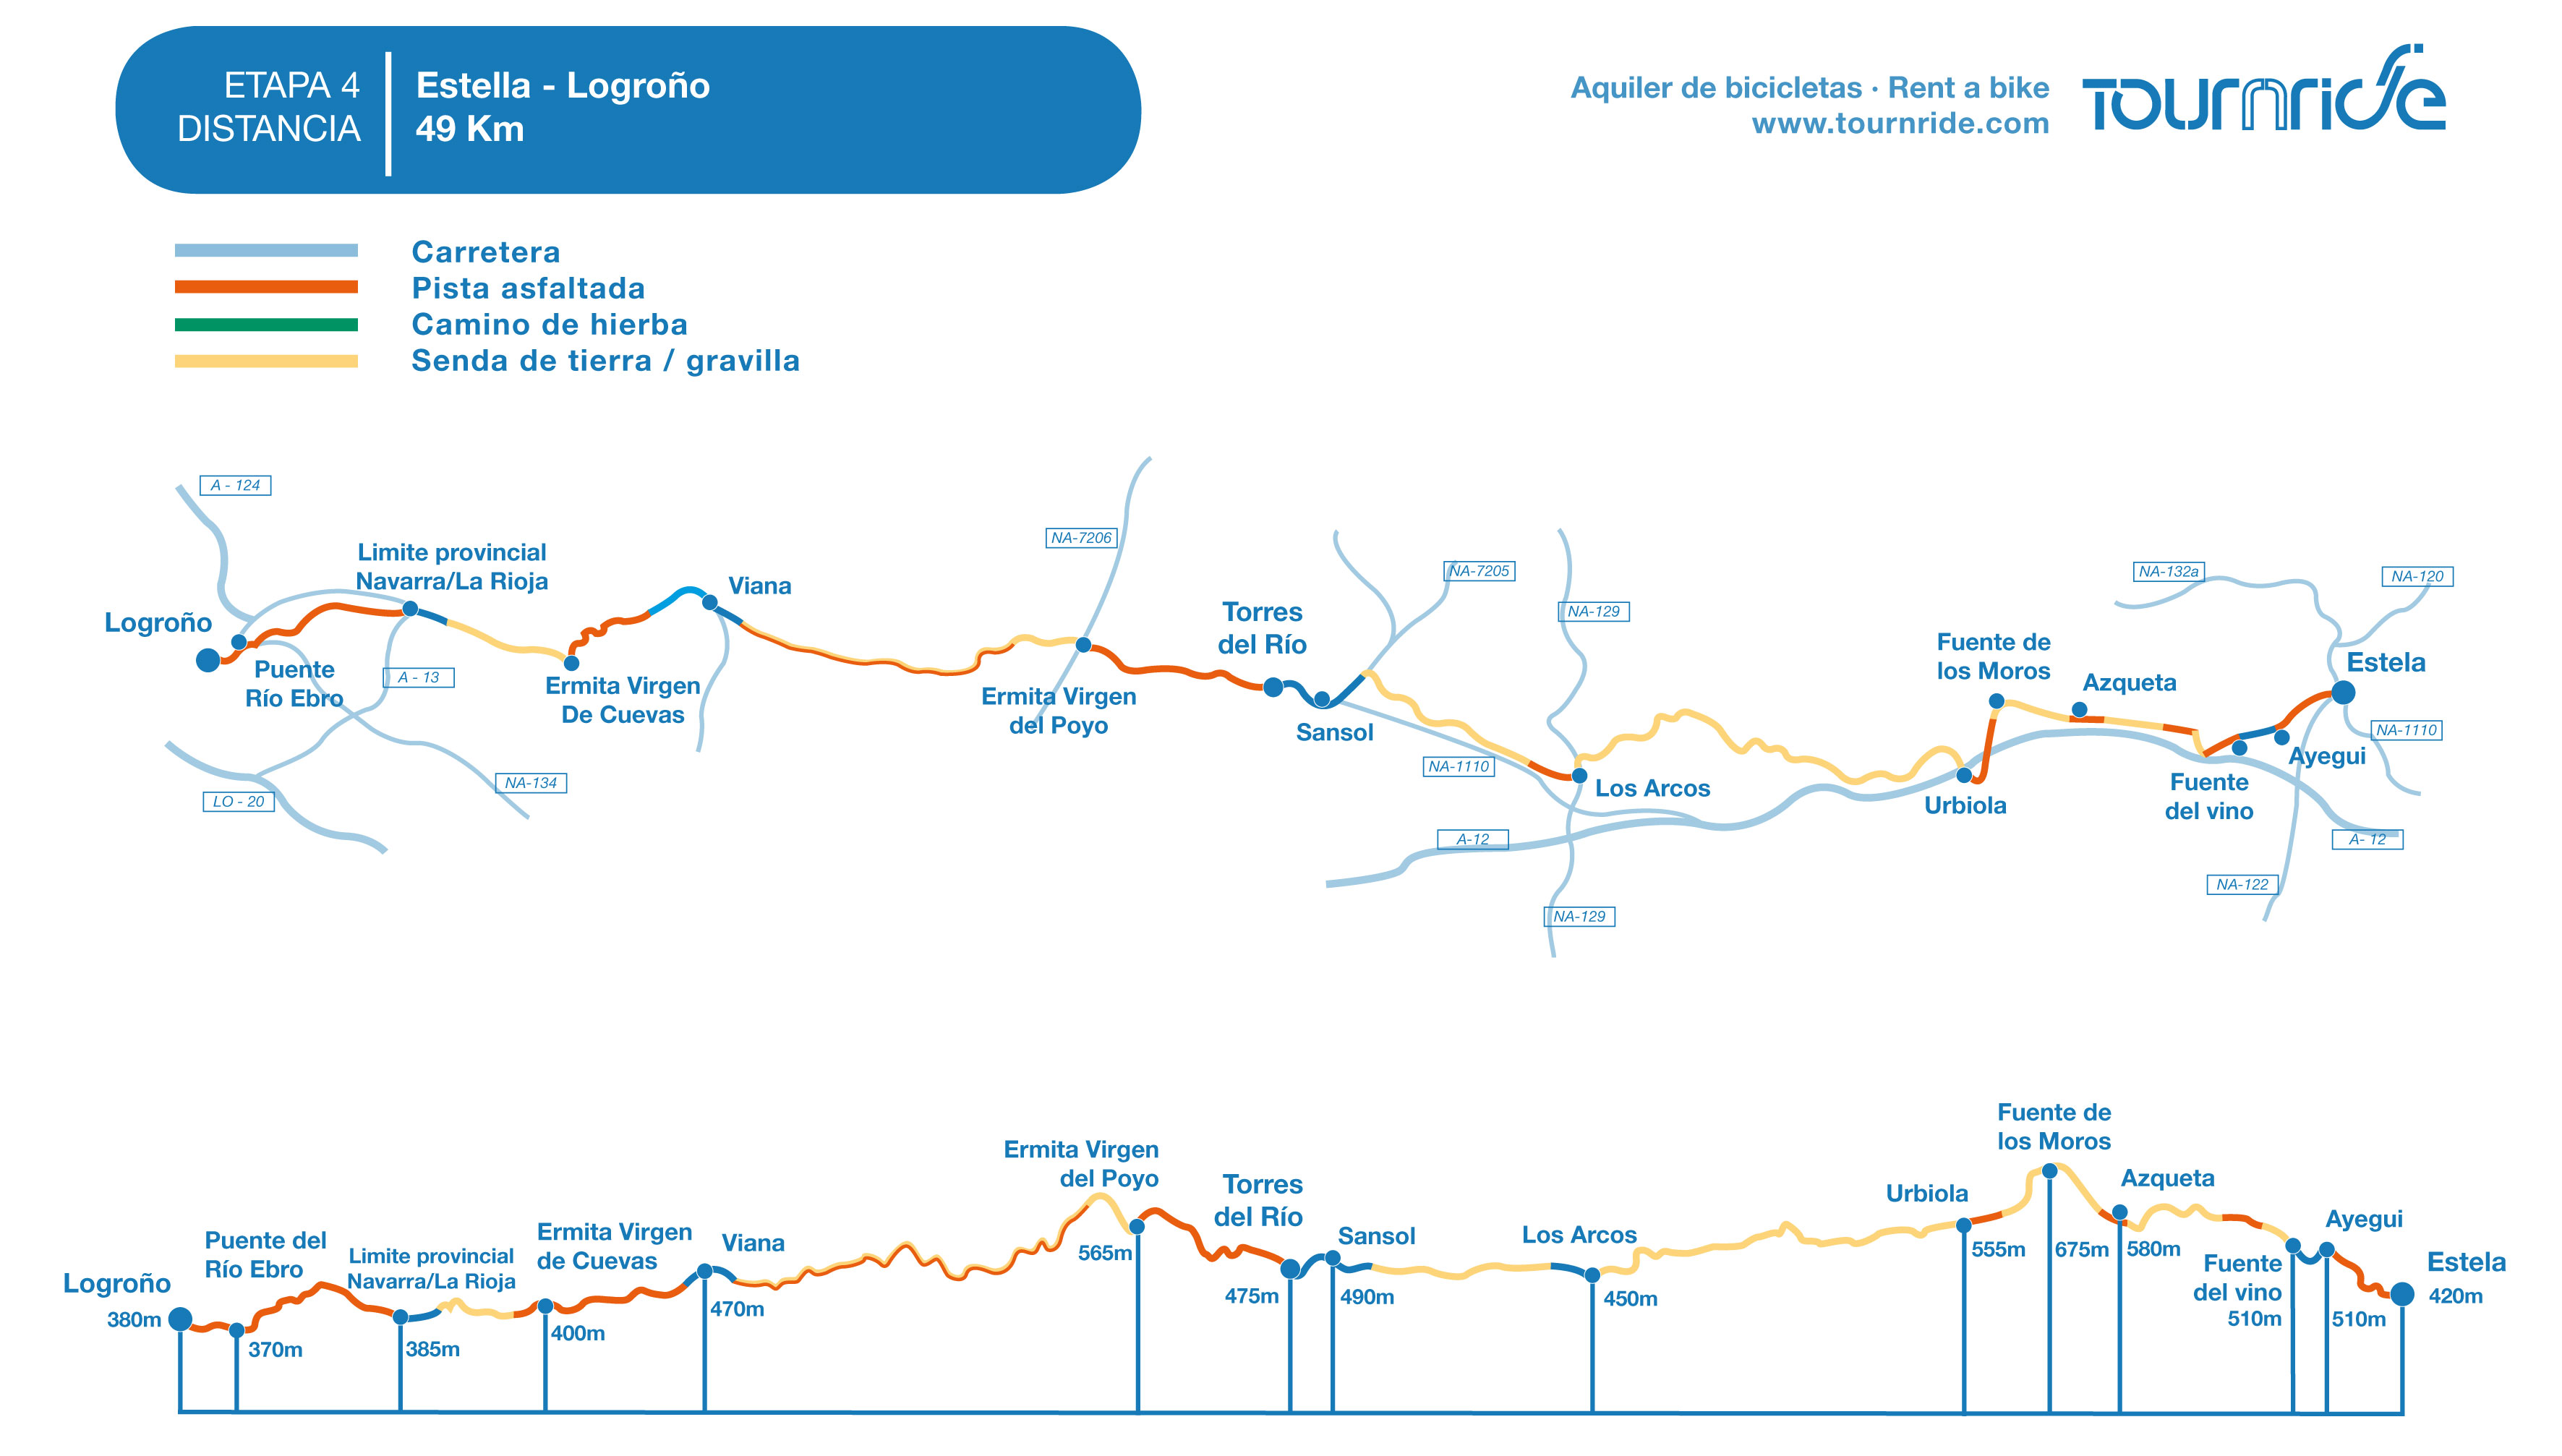 Saint James Way by bike stage four: from Estella to Logroño